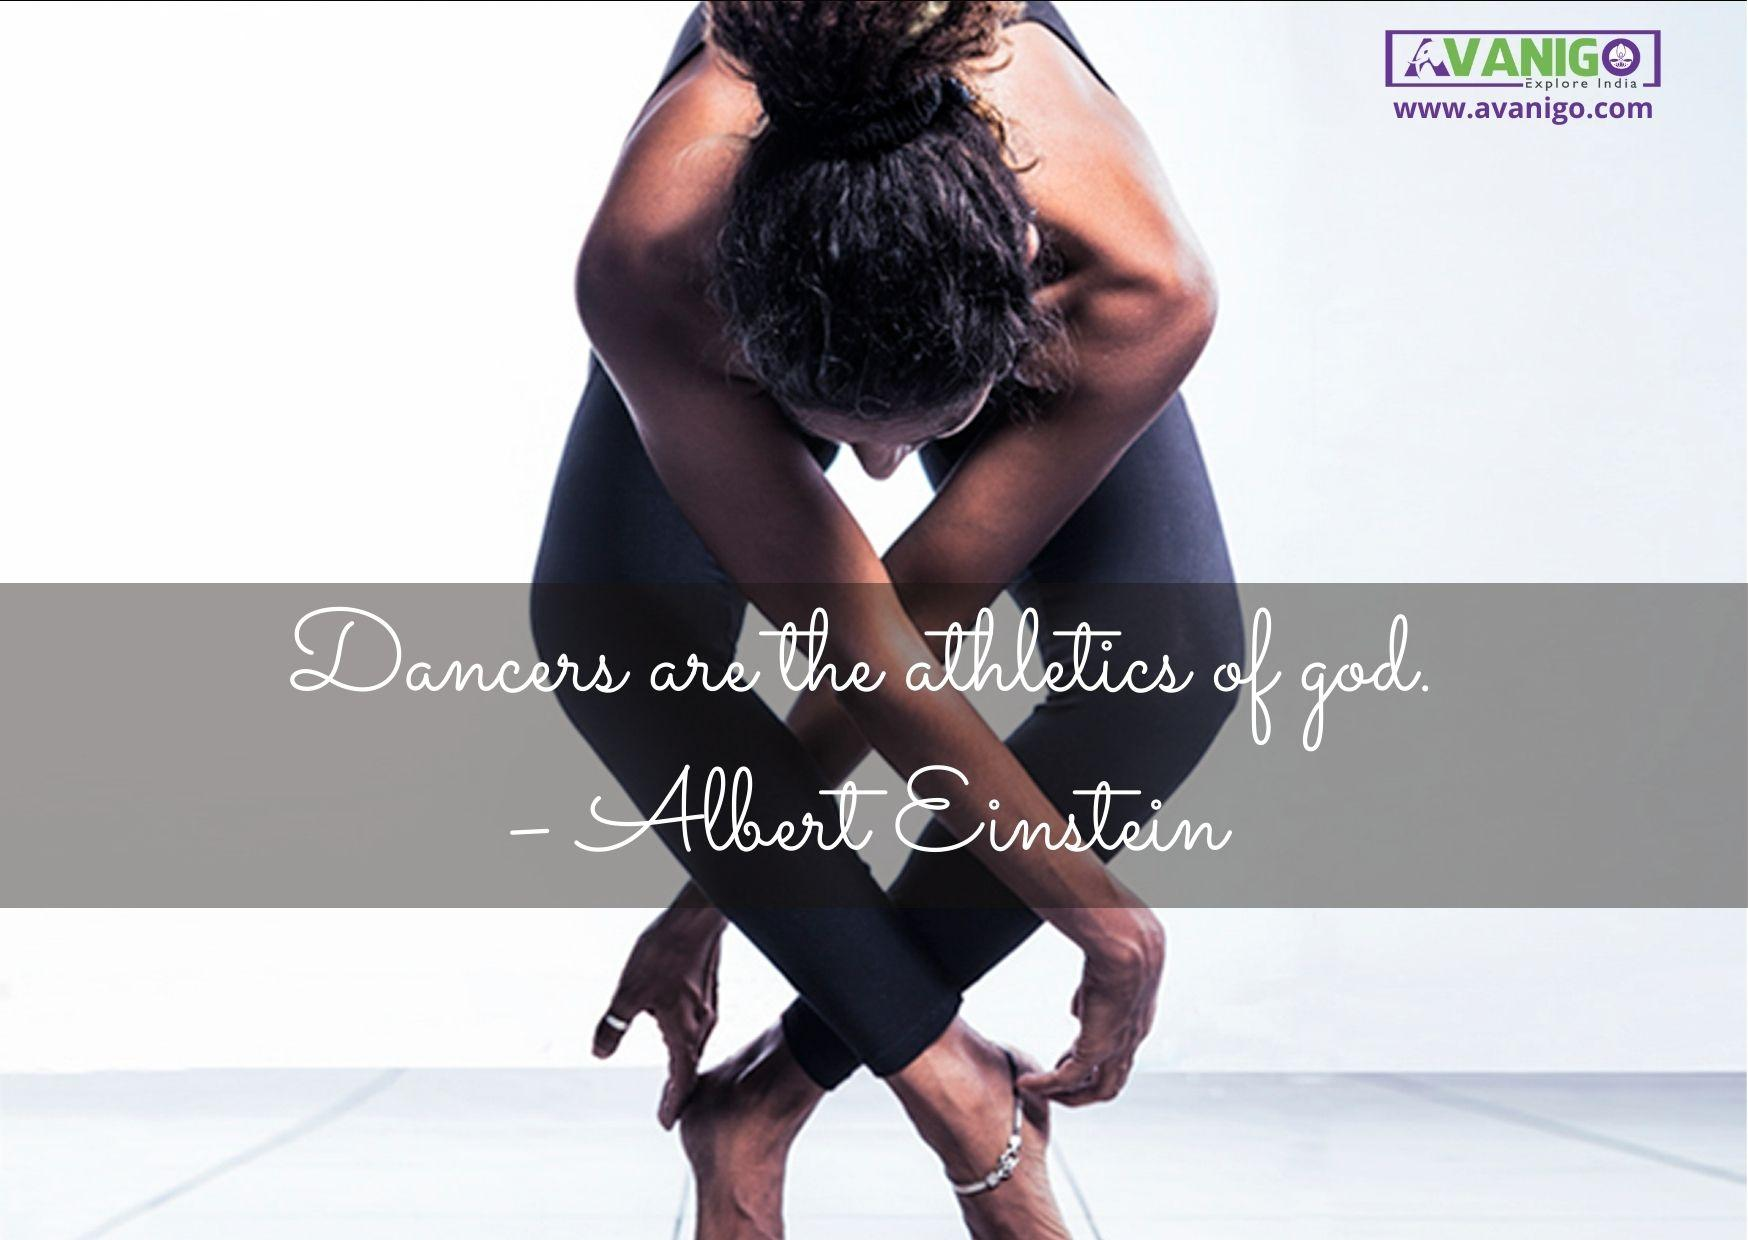 Dancers are the athletics of god.